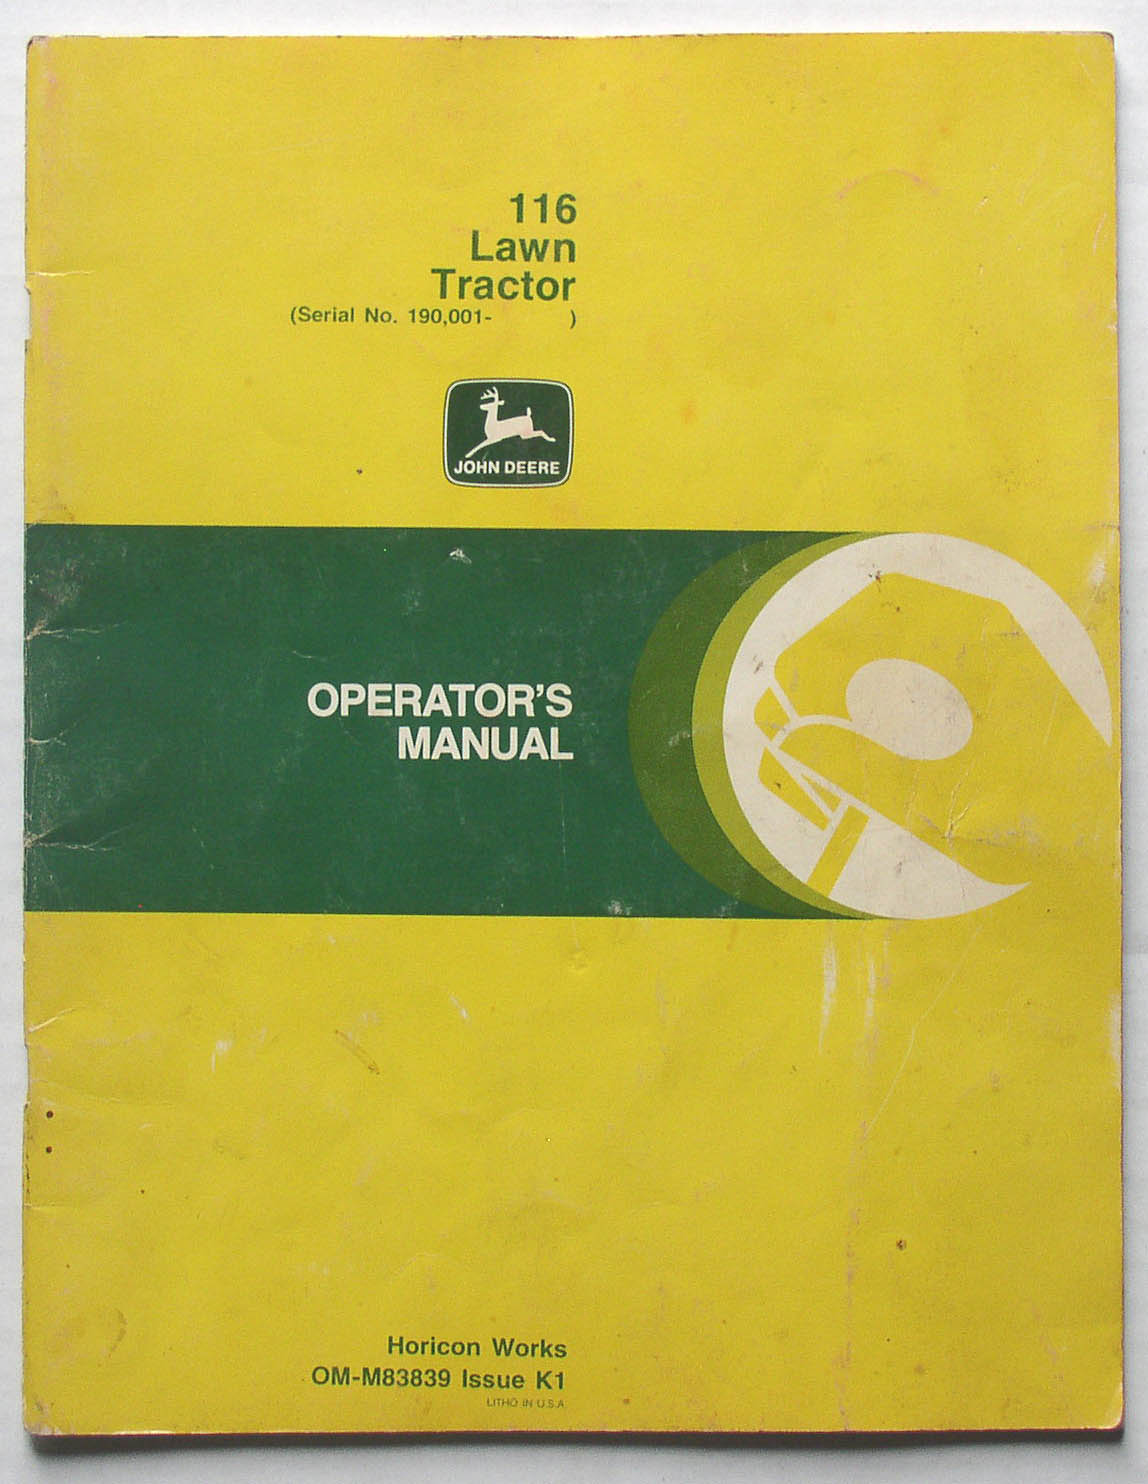 116 John Deere Lawn Tractor Wiring Diagram Starting Know About Ford 7710 Original Operator S Manual Thingery Rh Saintstevensthingery Com